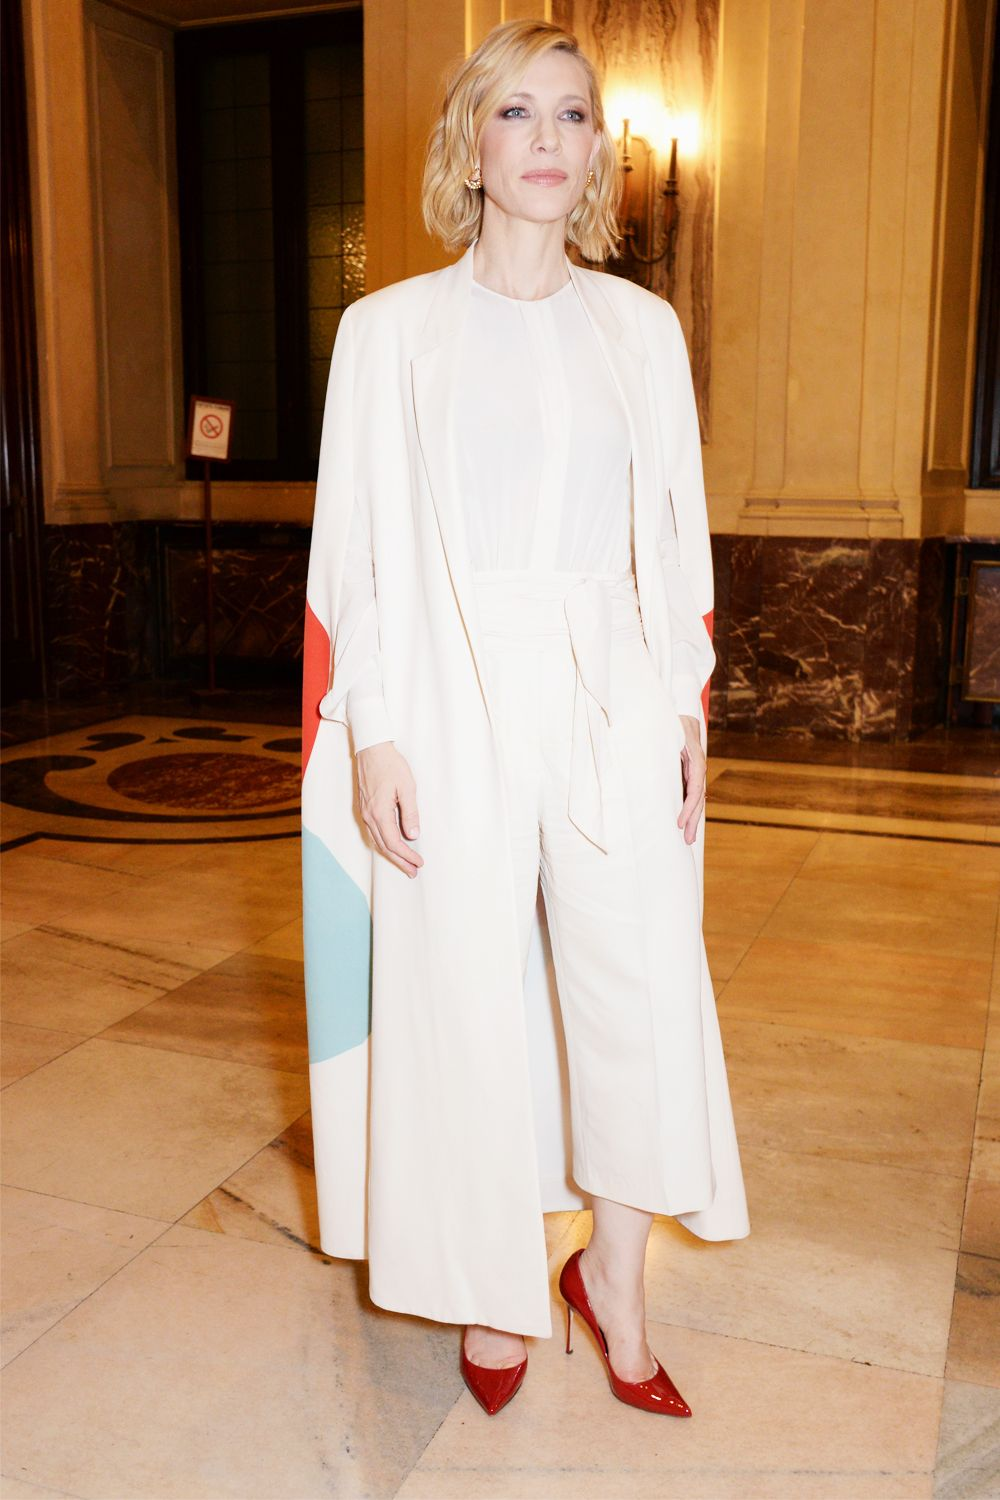 21 Women Every Minimalist Should Look to for Outfit